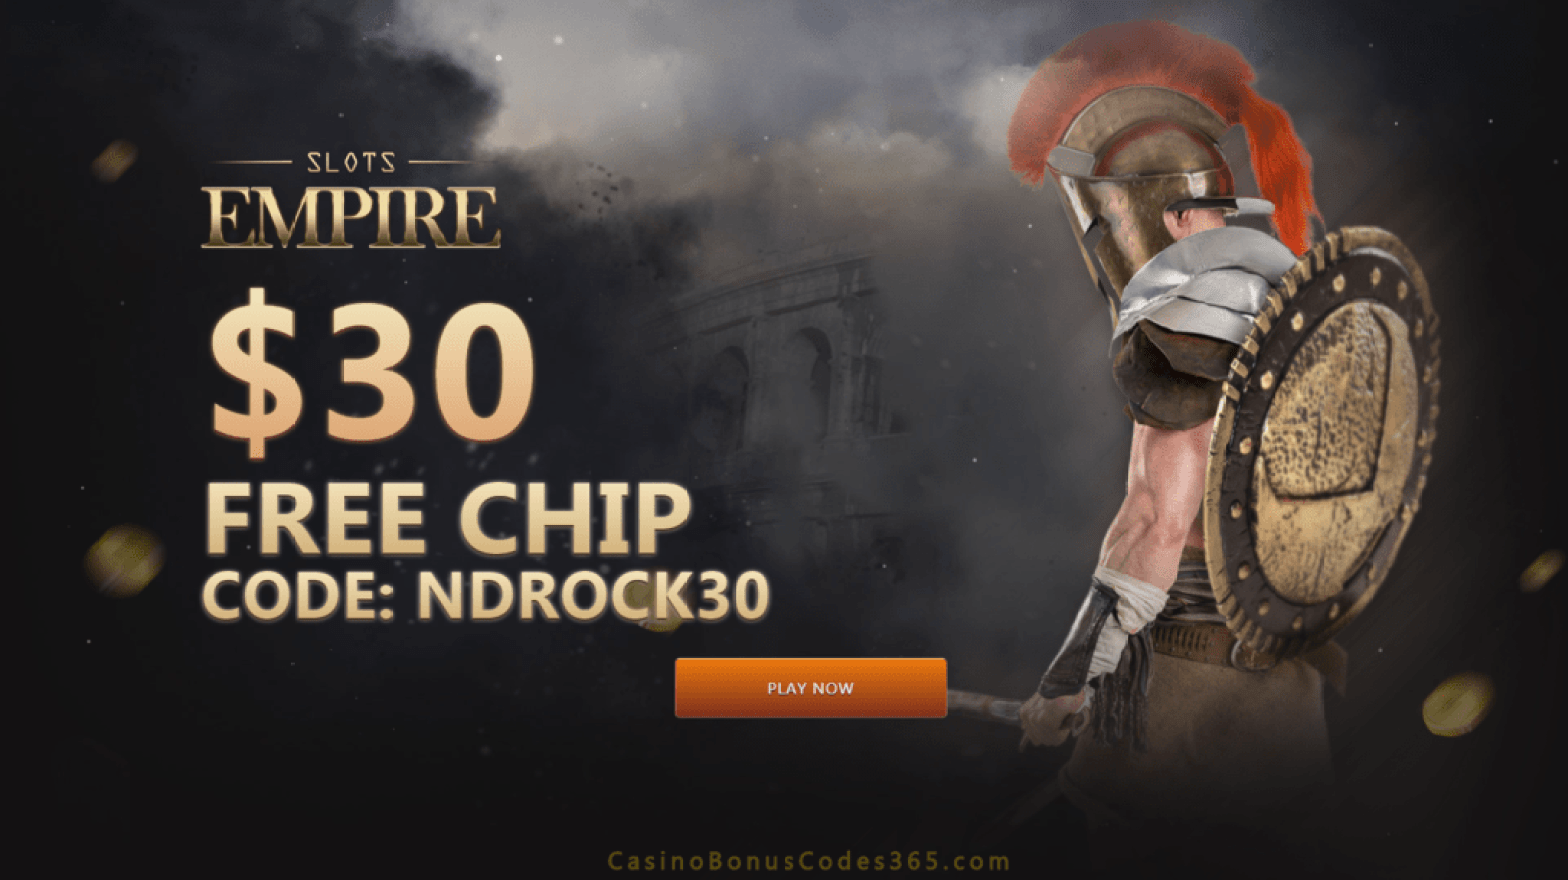 Slots Empire Exclusive $30 FREE Chip Welcome Deal